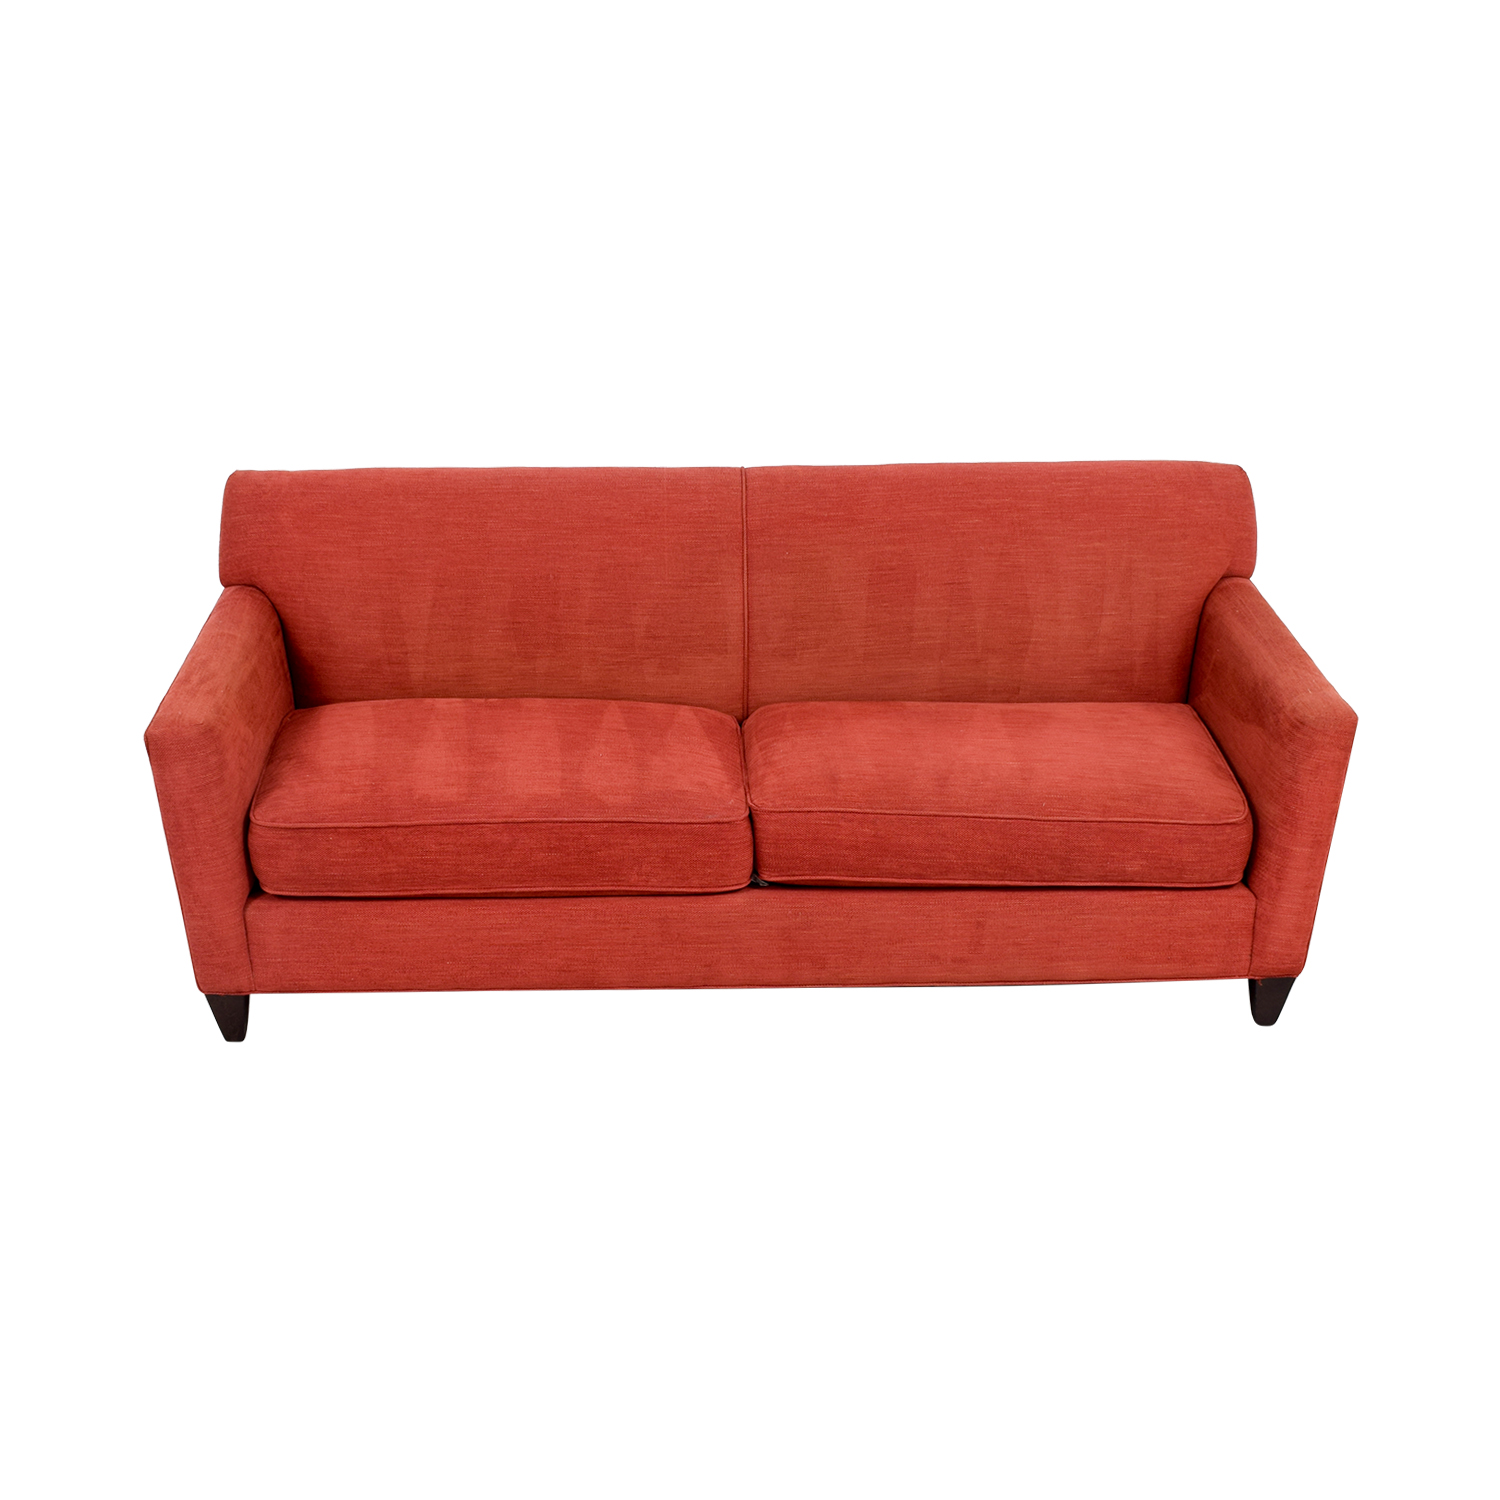 Classic sofas used classic sofas for sale for Traditional couches for sale